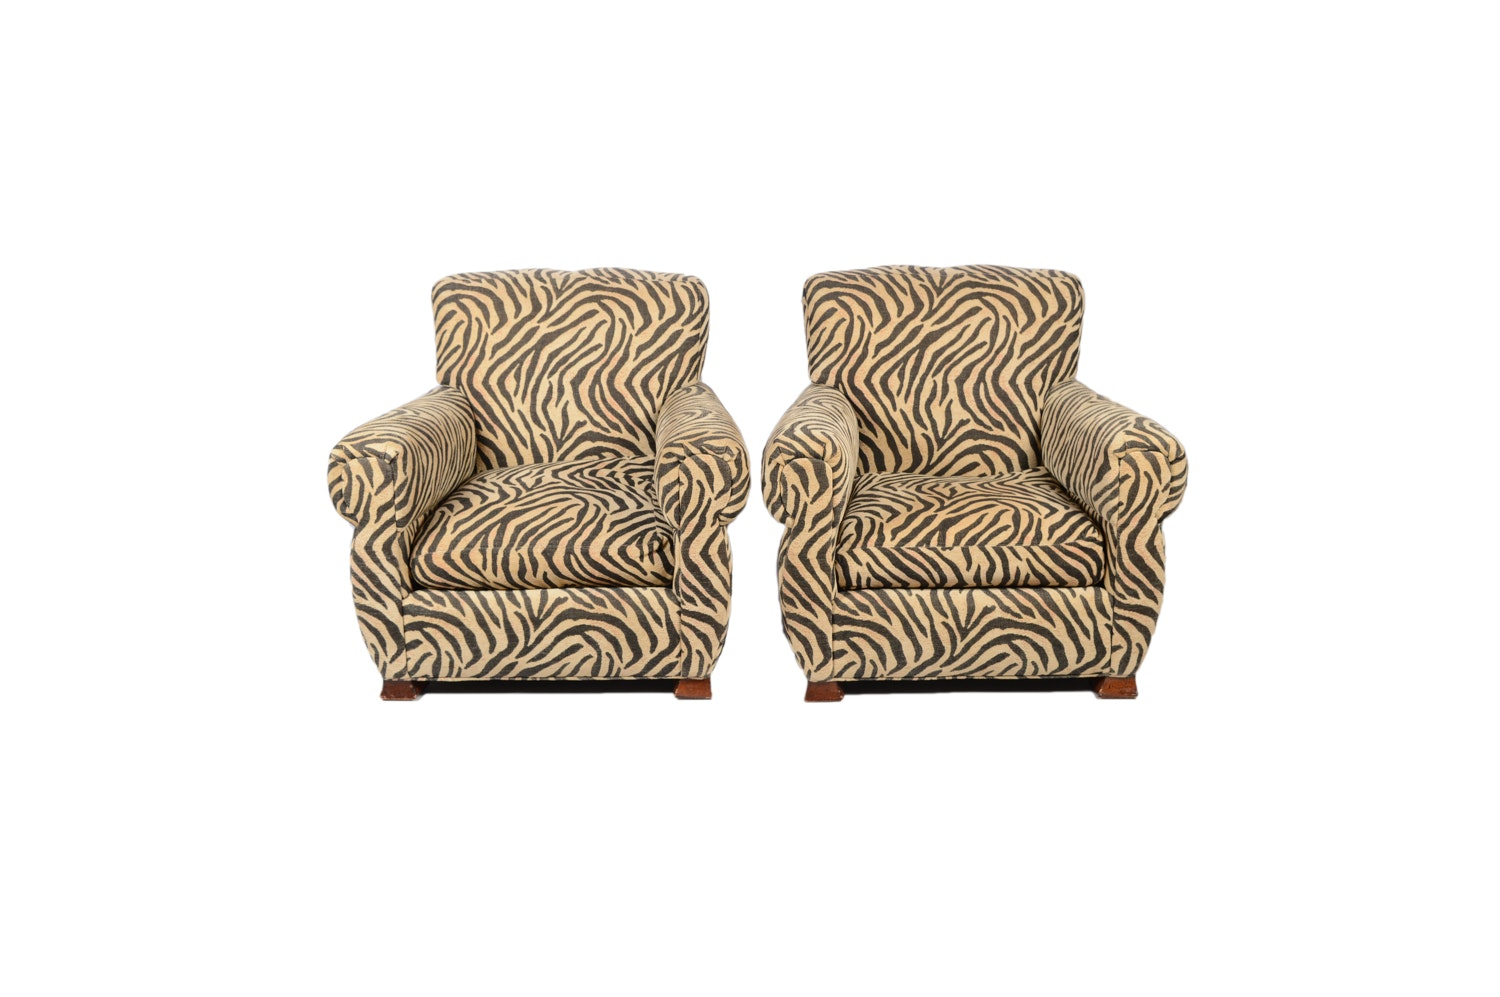 Upholstered Armchairs by Beverly, Dated 1996